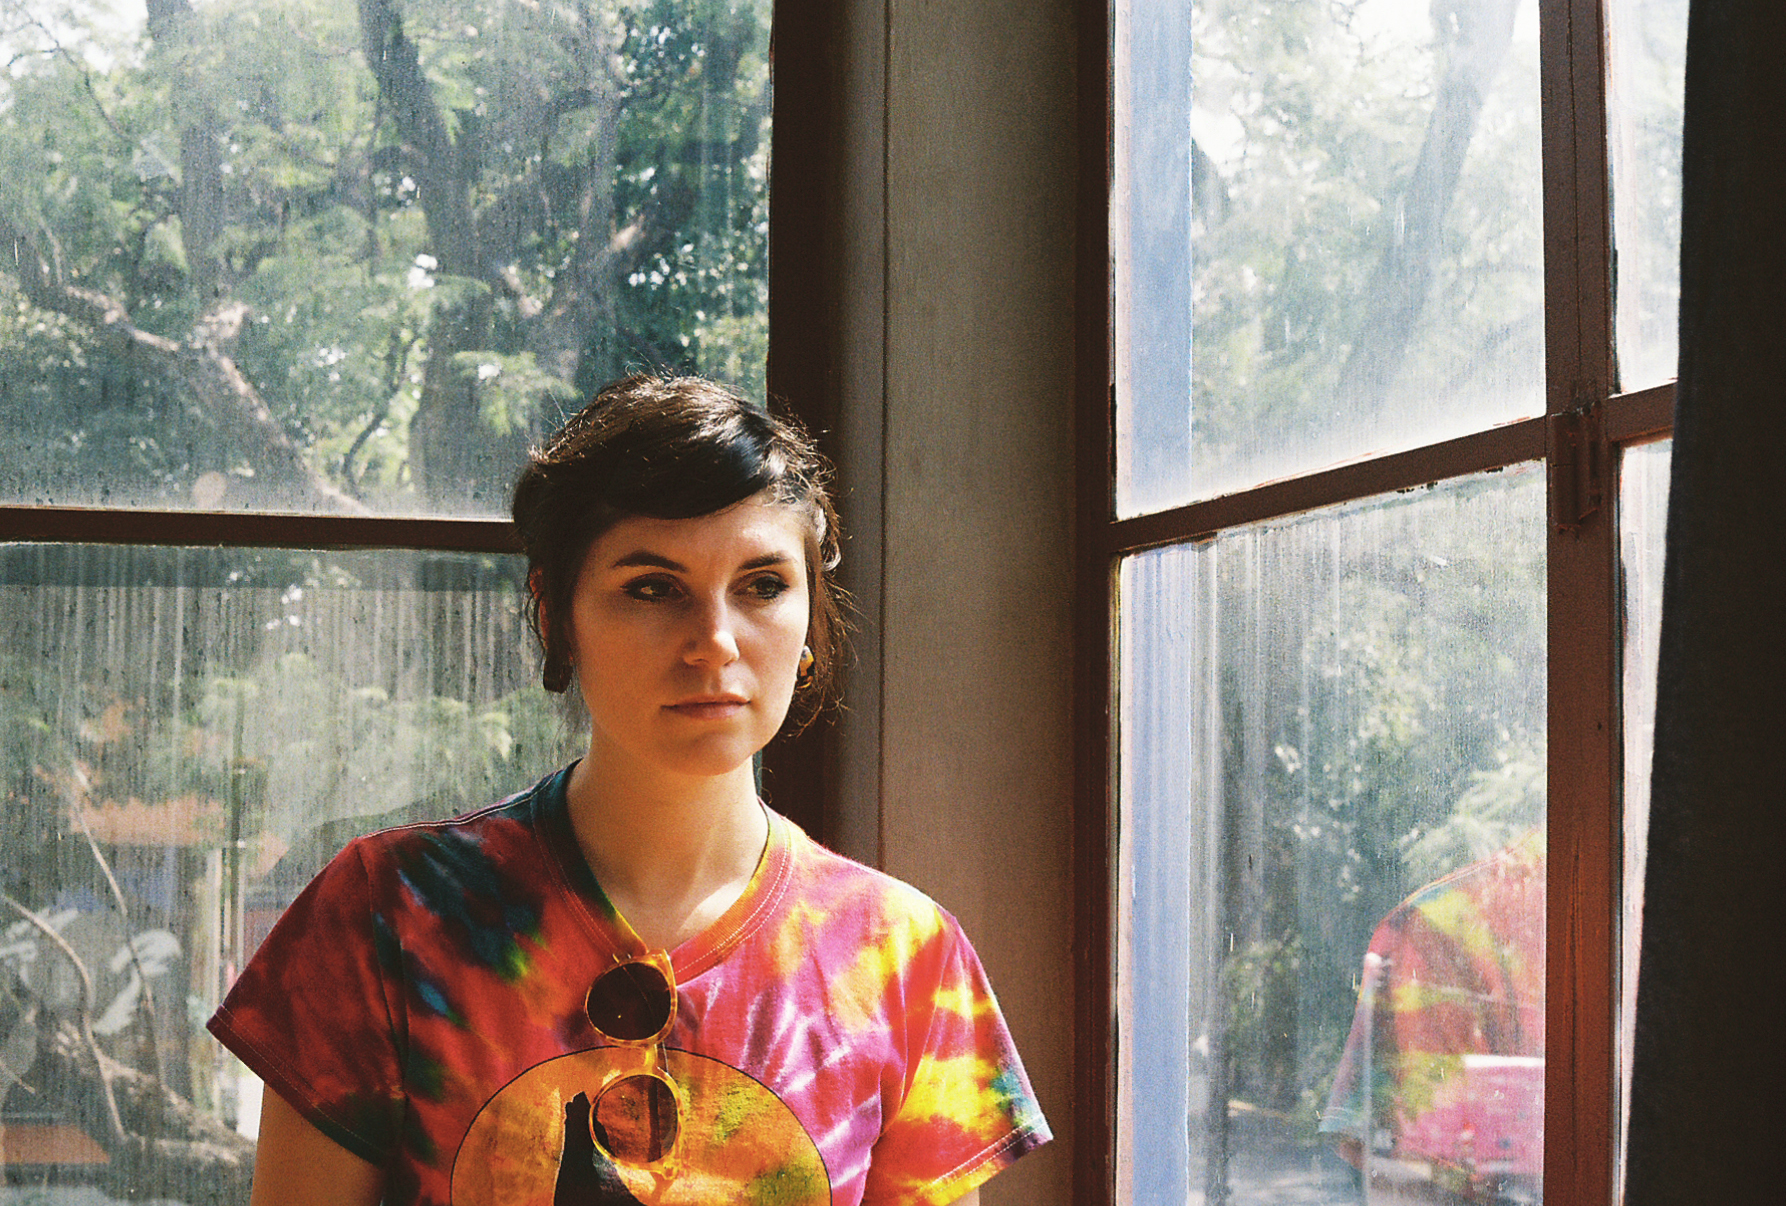 Beautiful woman in tie-dyed shirt looks thoughtful inside the studio home of Frida Kahlo, Mexico City. By Nick Barry